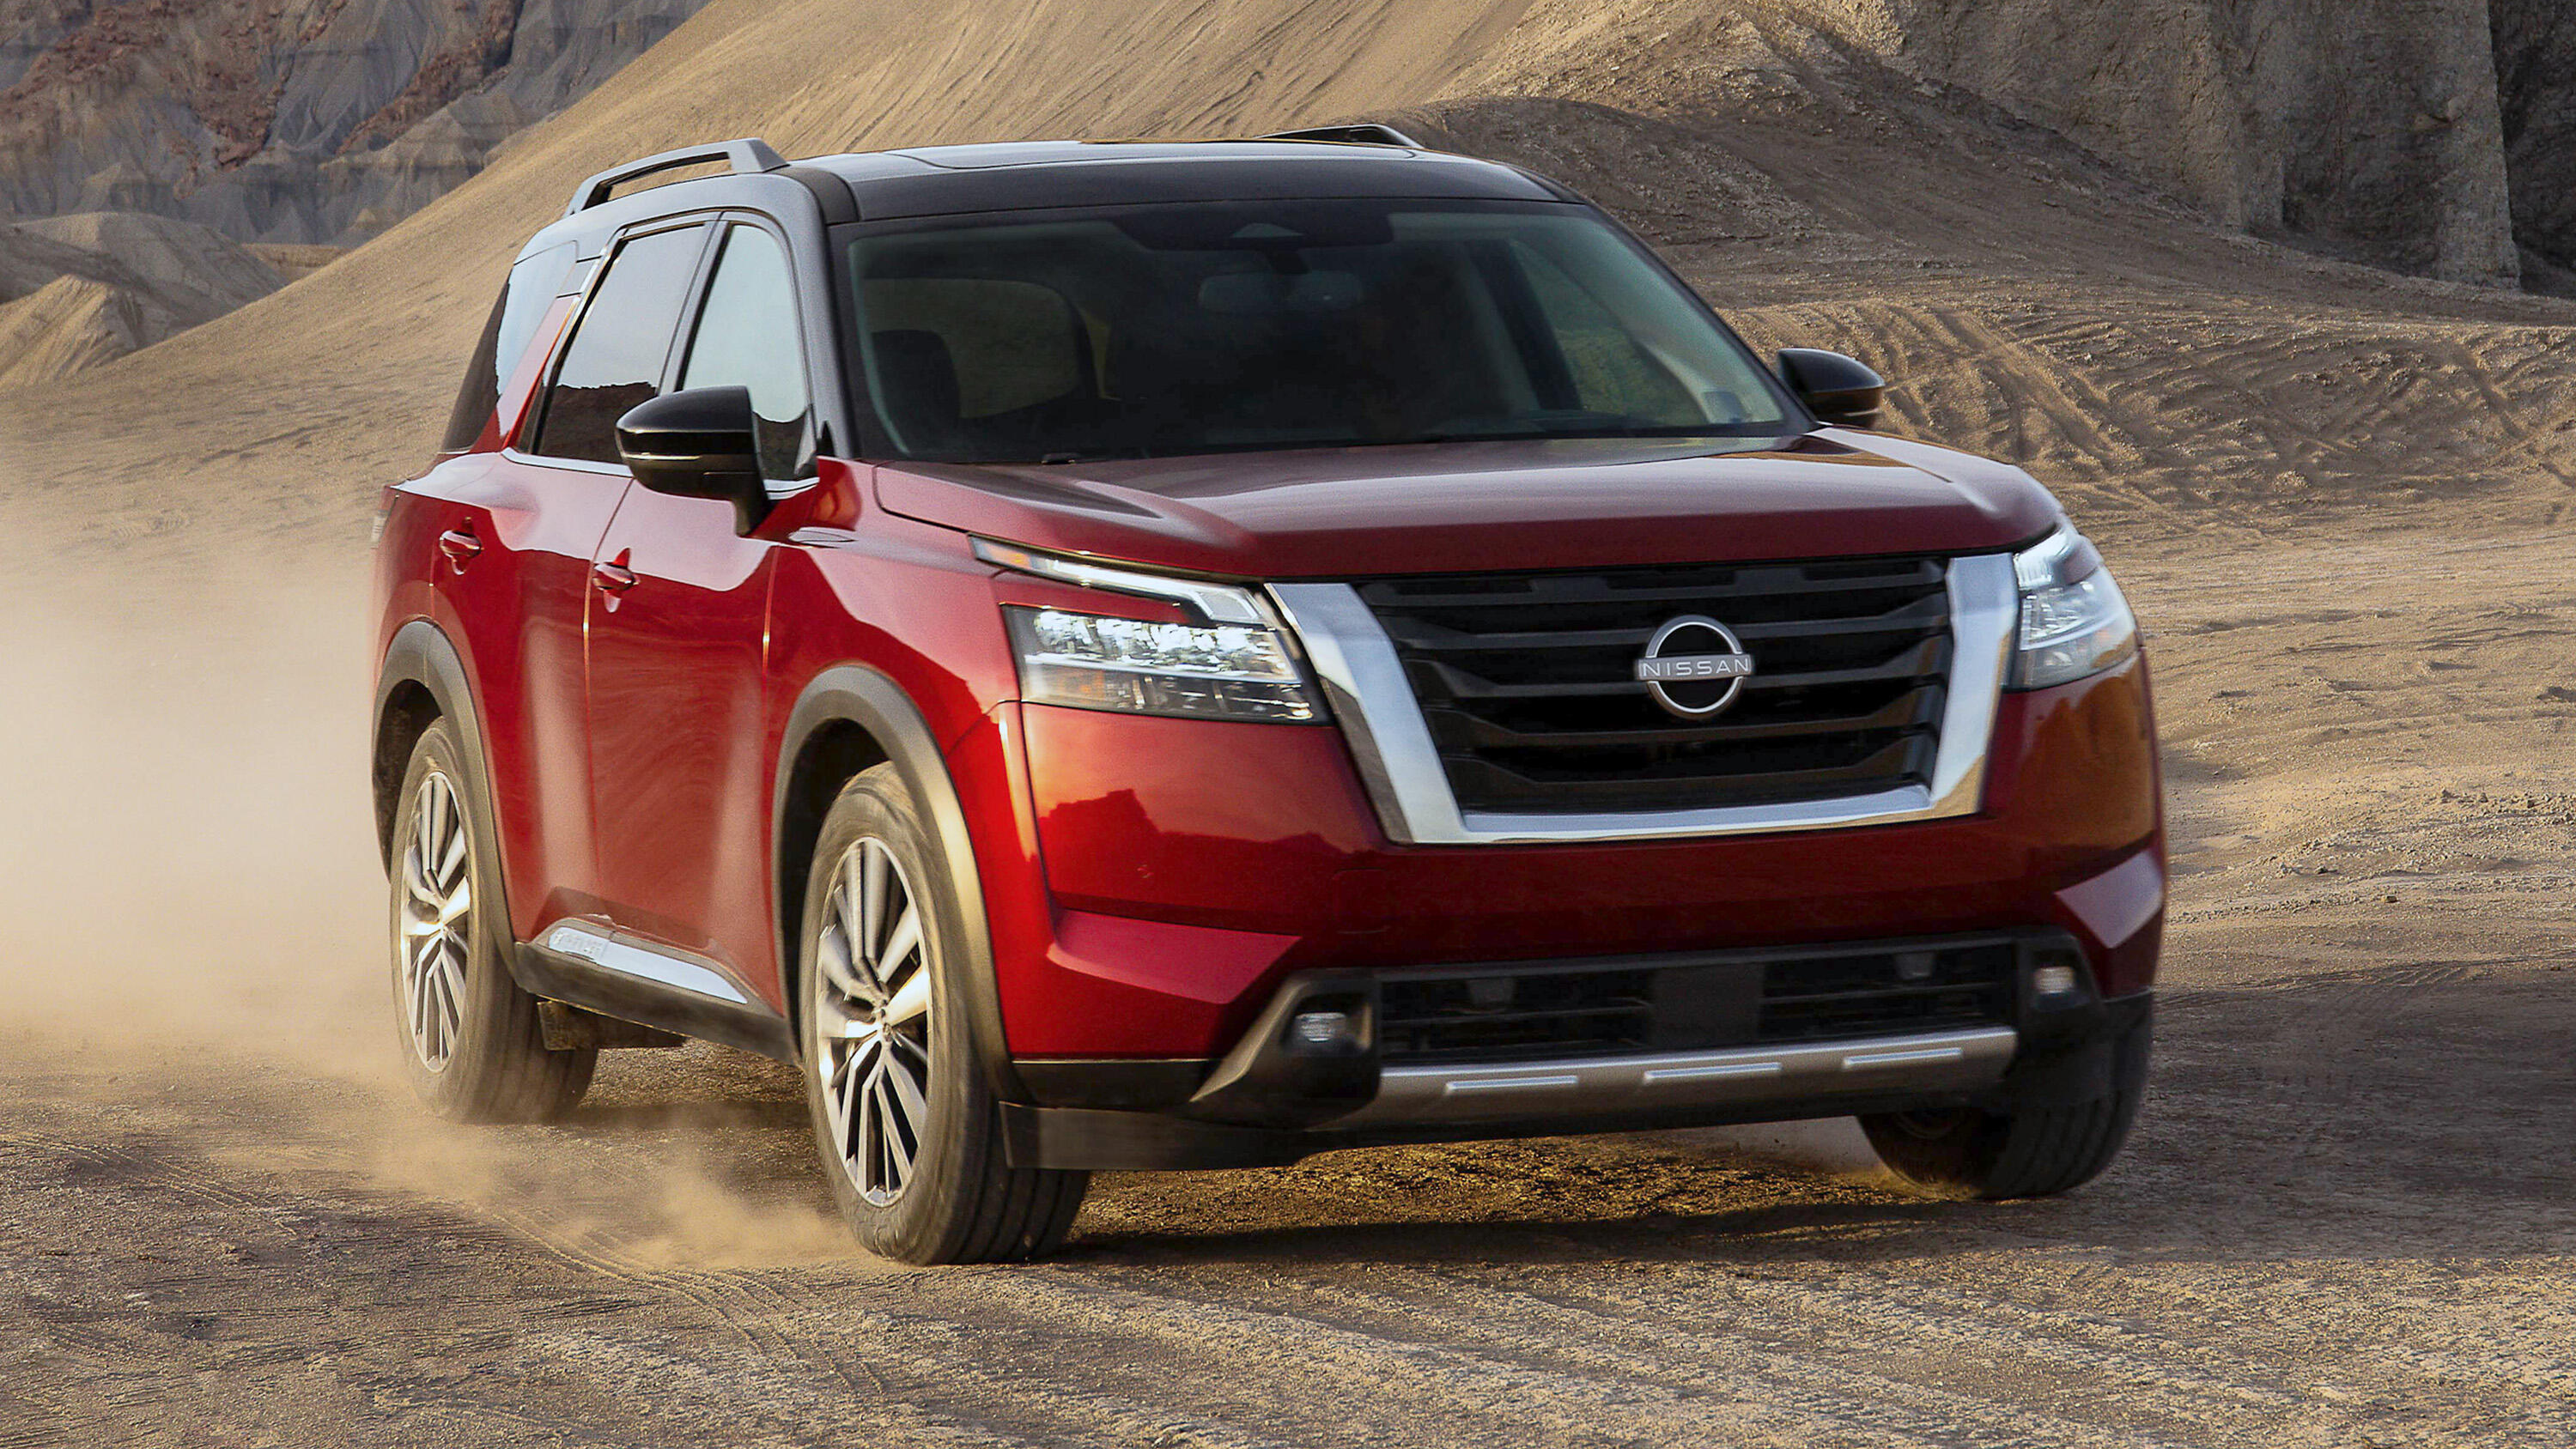 Video: Nissan Pathfinder gets better looks and tech for 2022